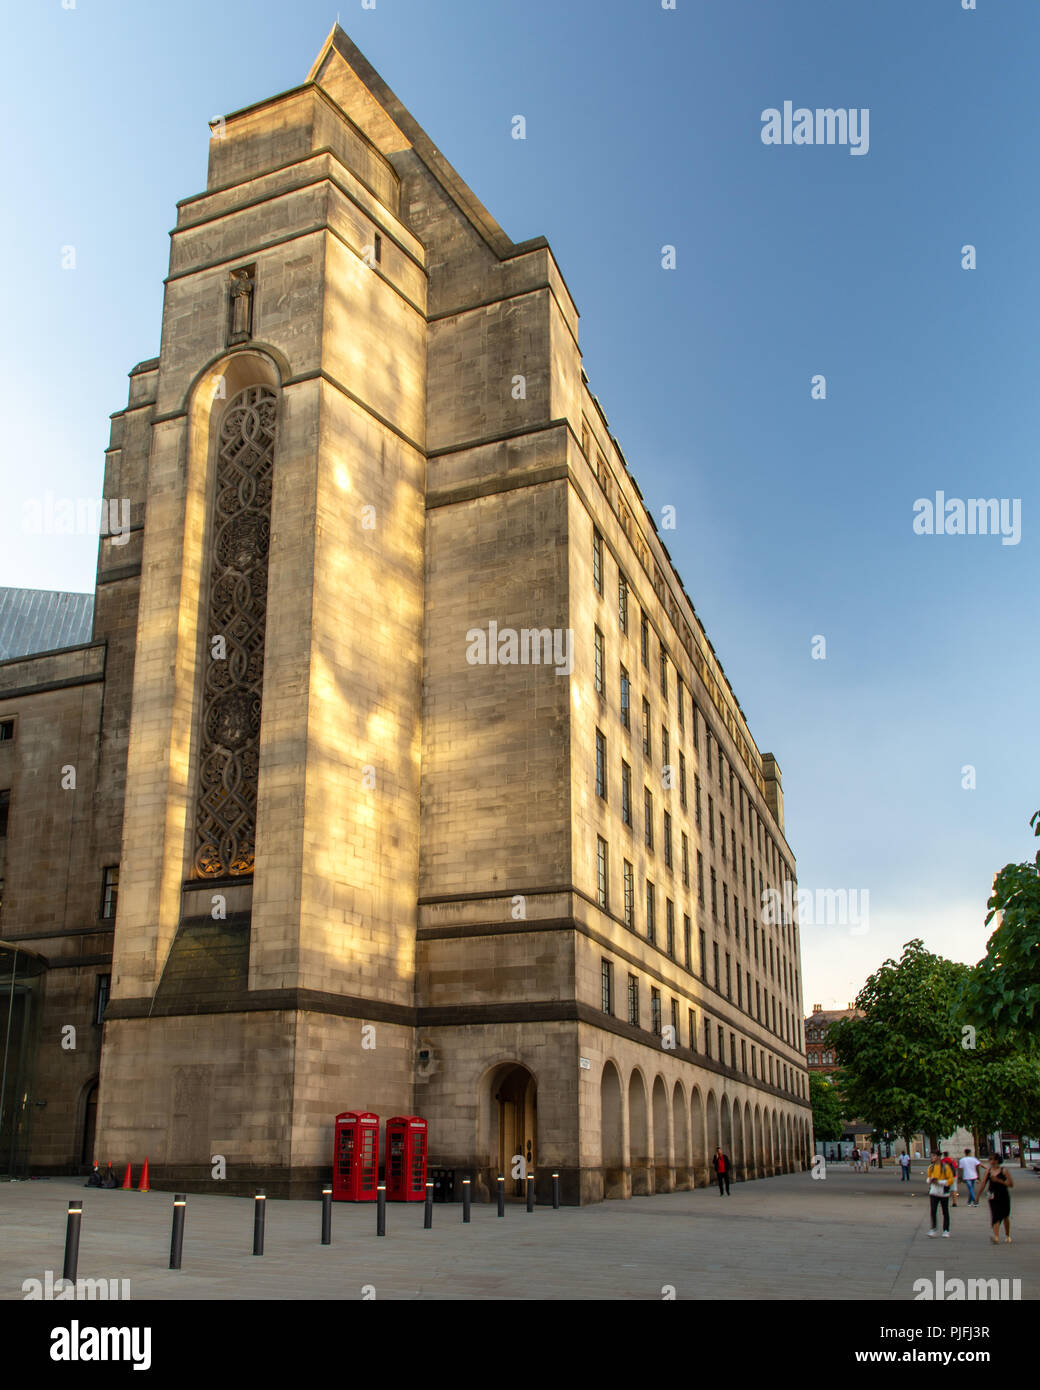 Manchester, England, UK - June 30, 2018: Manchester's Town Hall Extension building, blending gothic and classical styles, stands in evening sunlight o - Stock Image